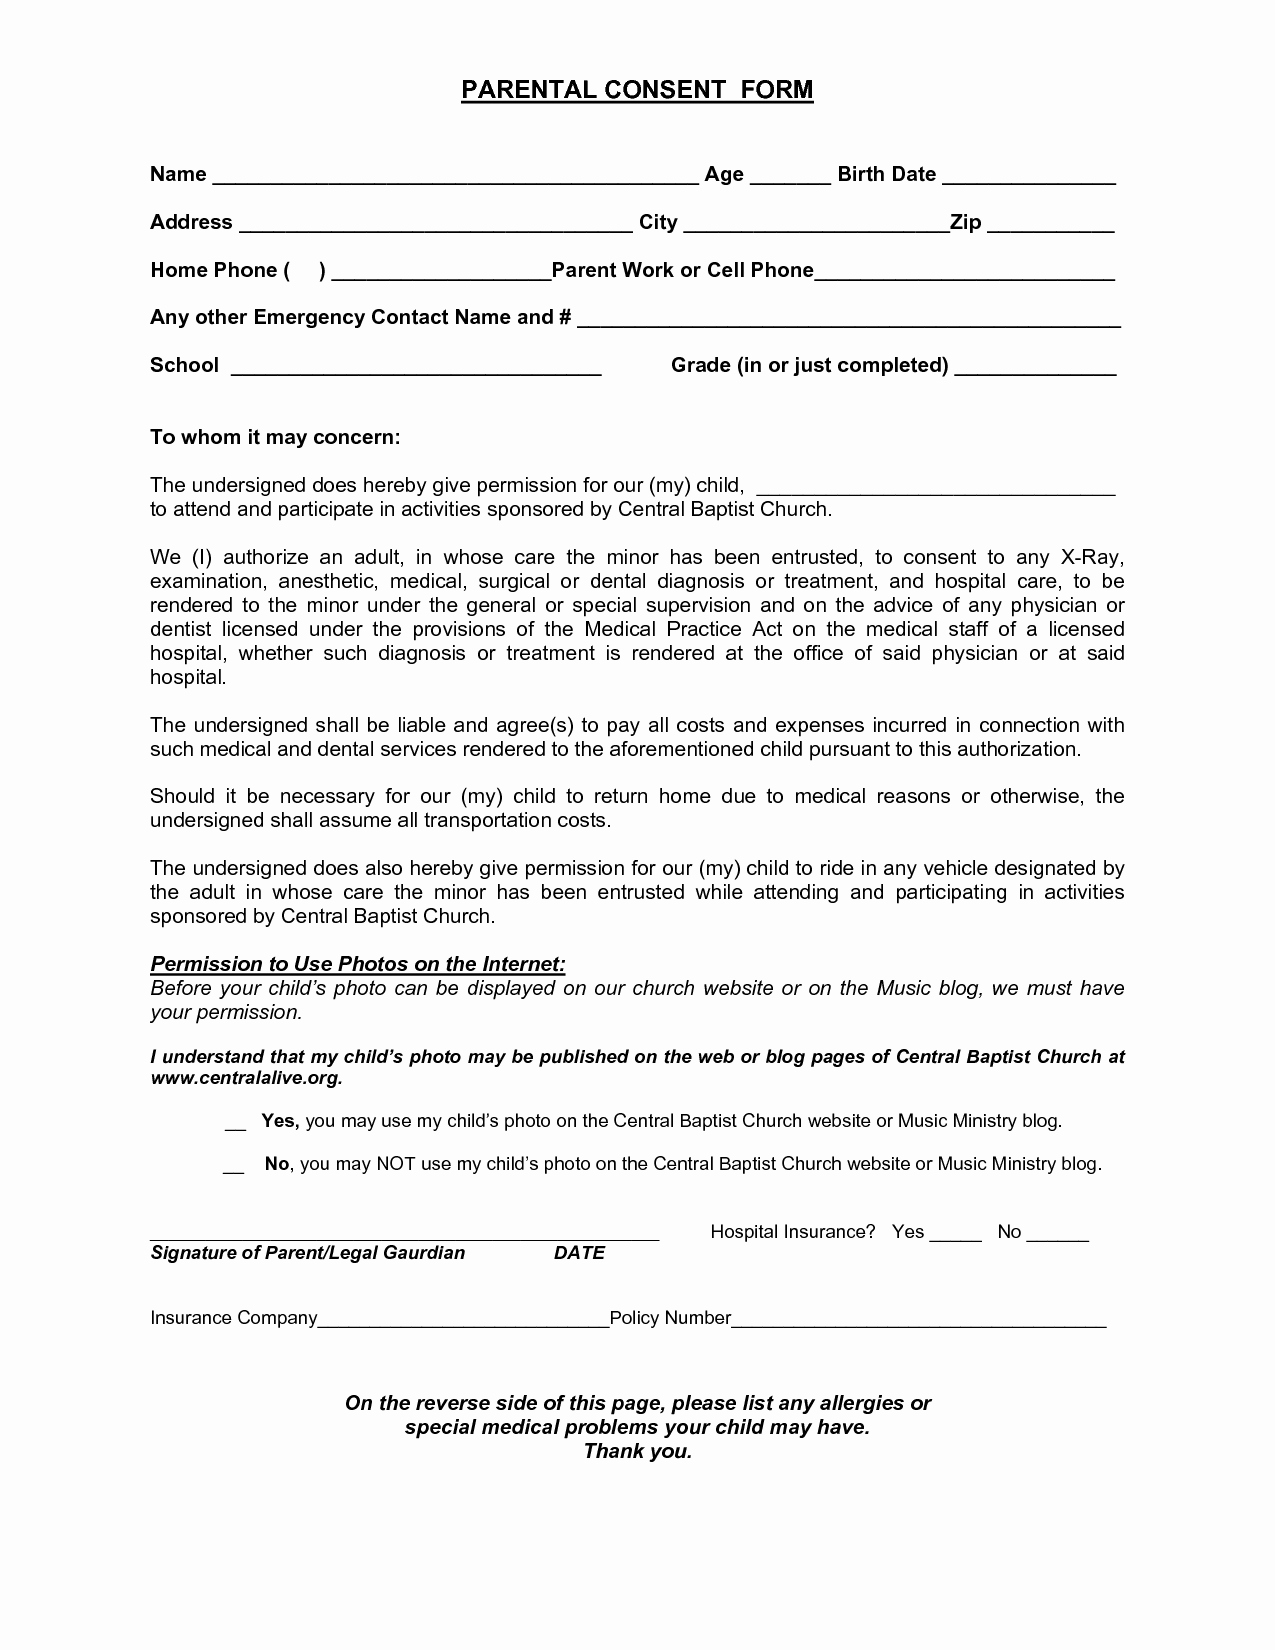 Parental Consent form for Work Inspirational Dating A Minor with Parental Consent Dating A Minor with